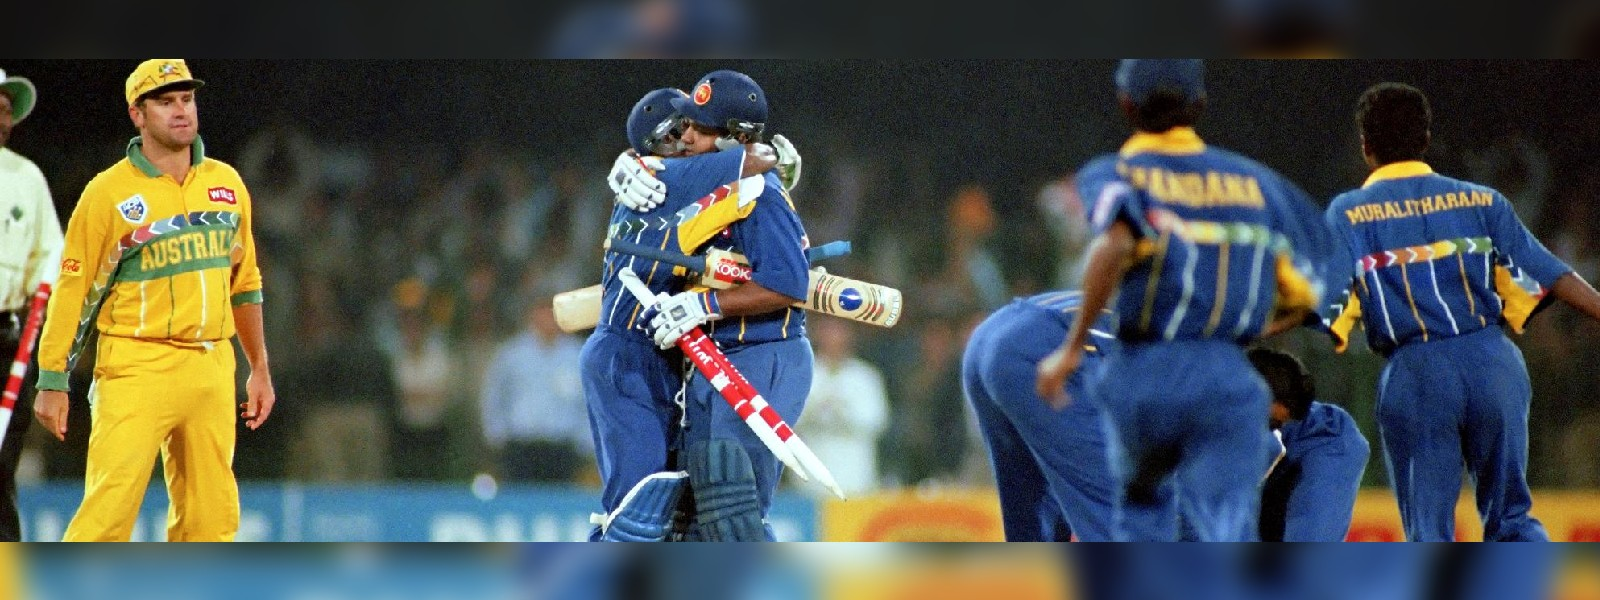 25th Anniversary of Sri Lanka's victory at the 1996 Cricket World Cup celebrated at Temple Trees